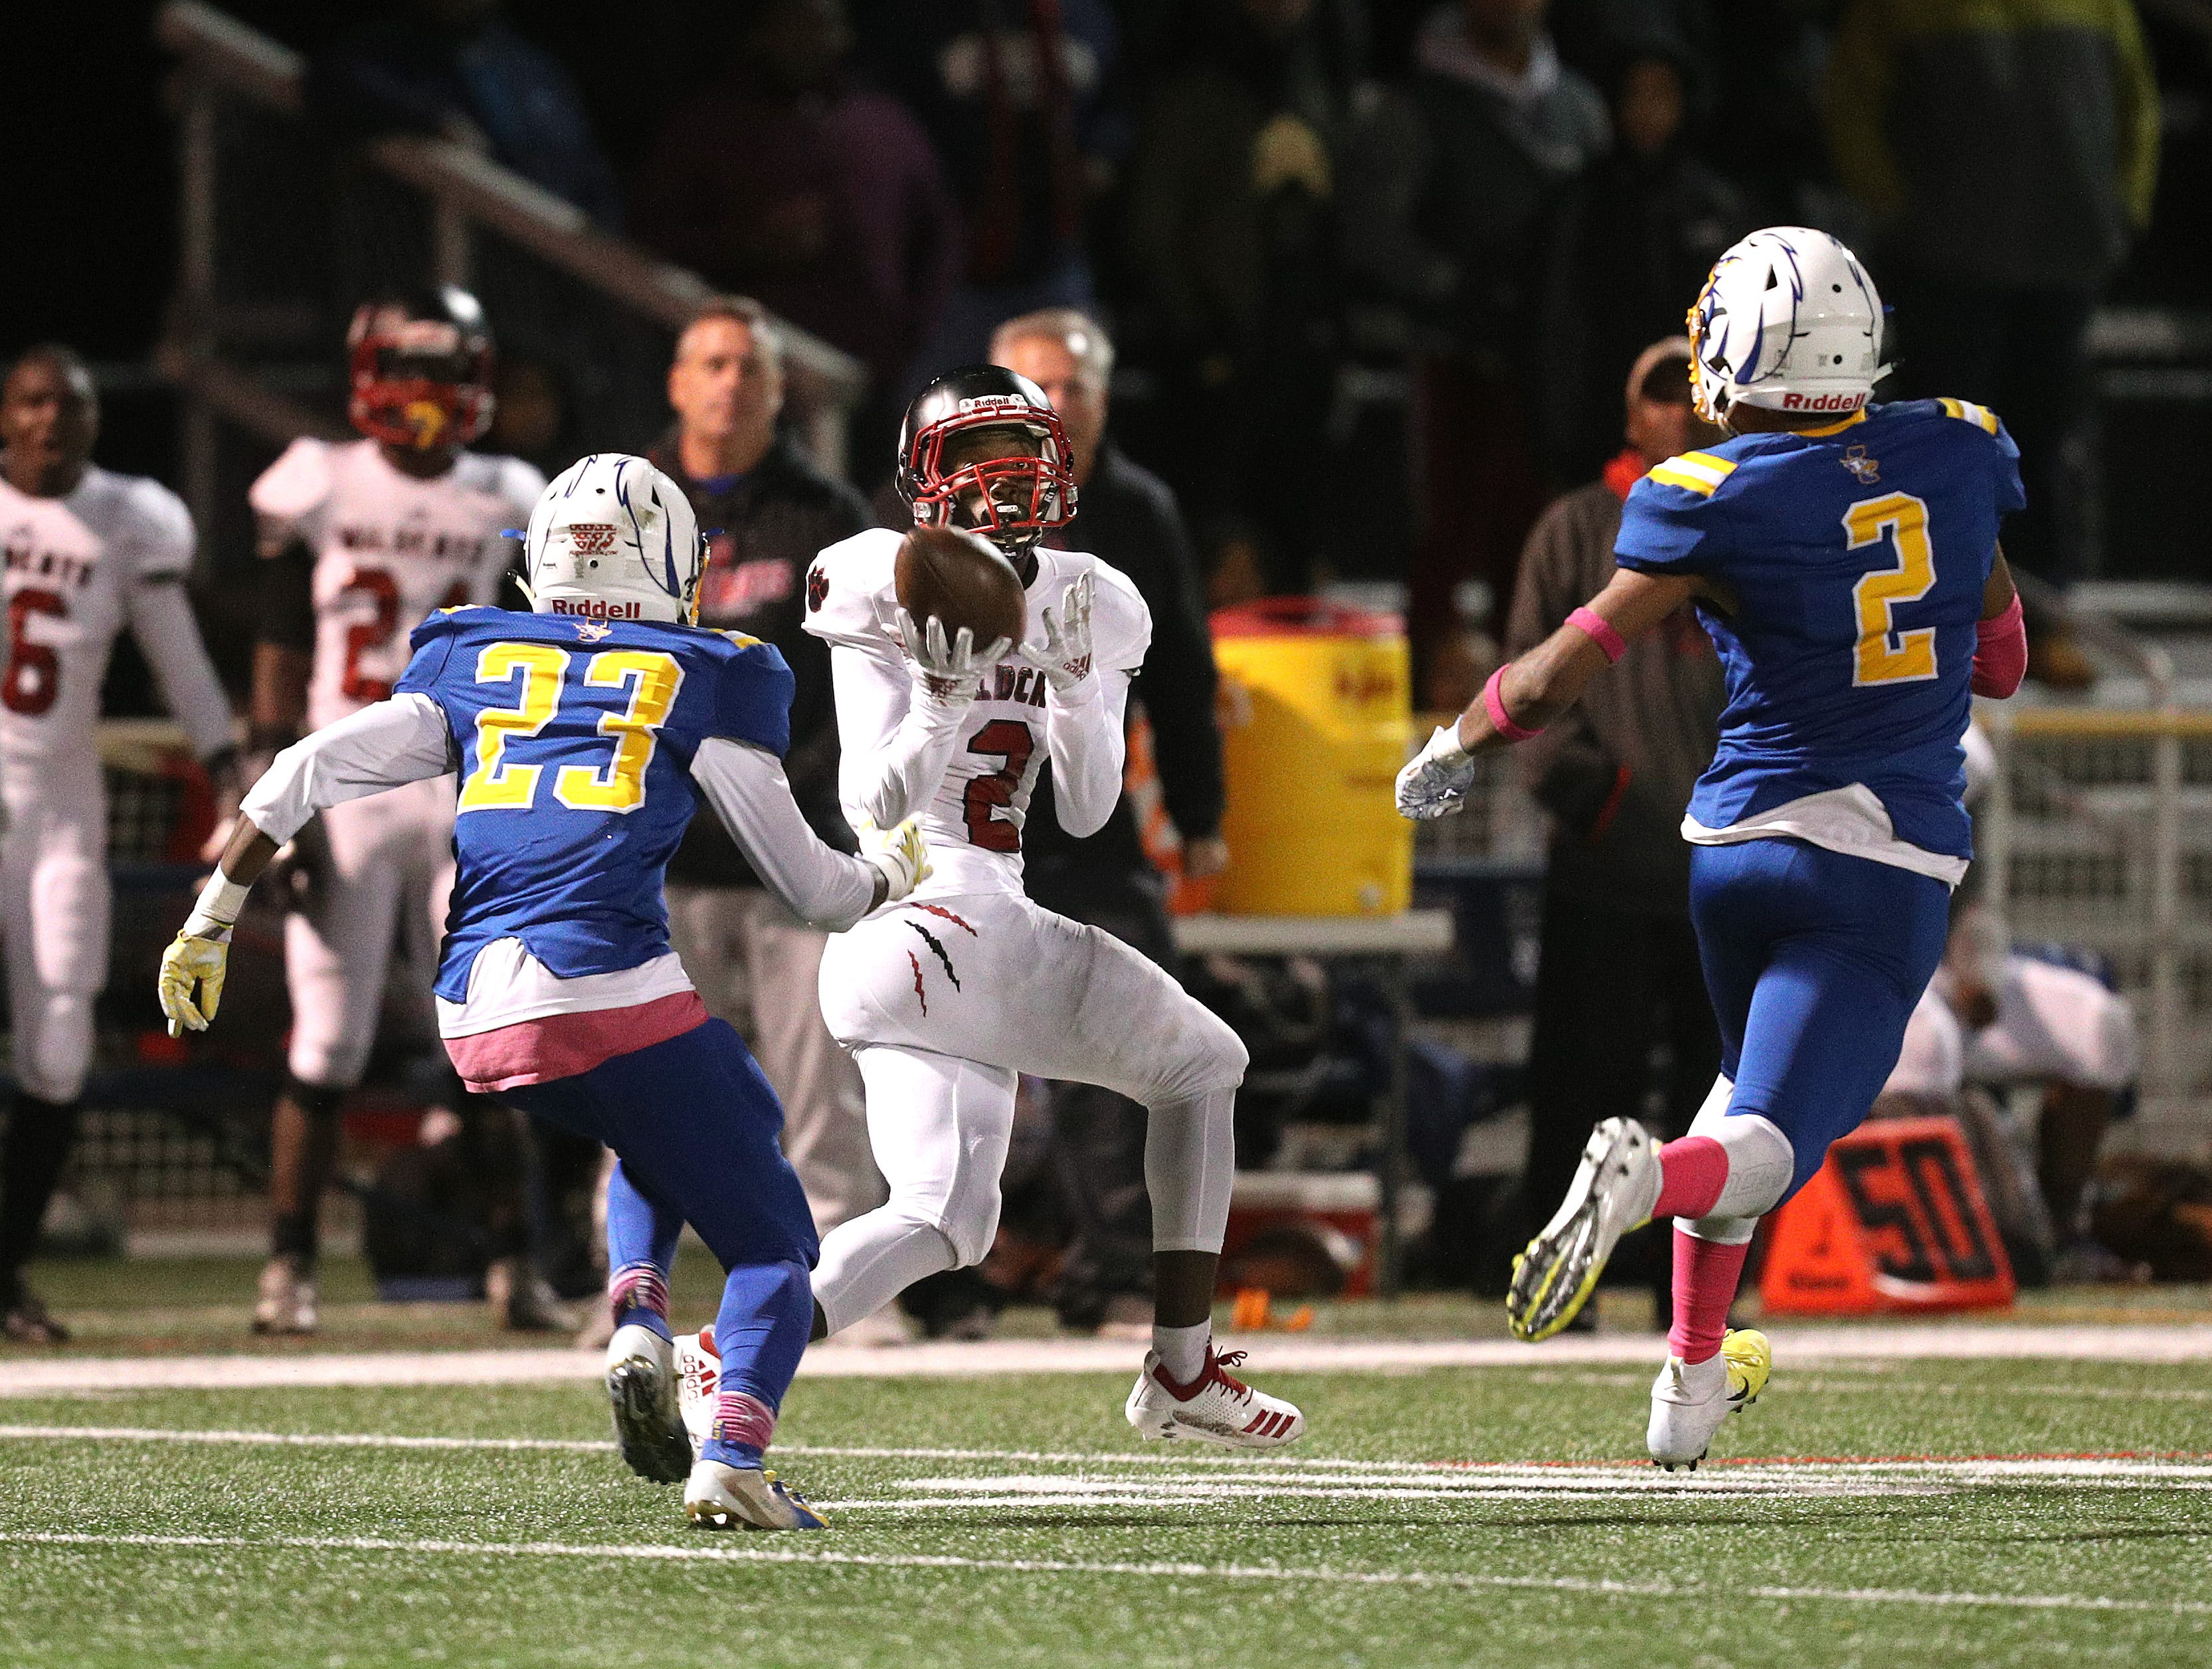 Wilson receiver Ricky Gamble Jr gets behind the Irondequoit defense to catch this 95-yard touchdown pass from quarterback Samuel Jackson.